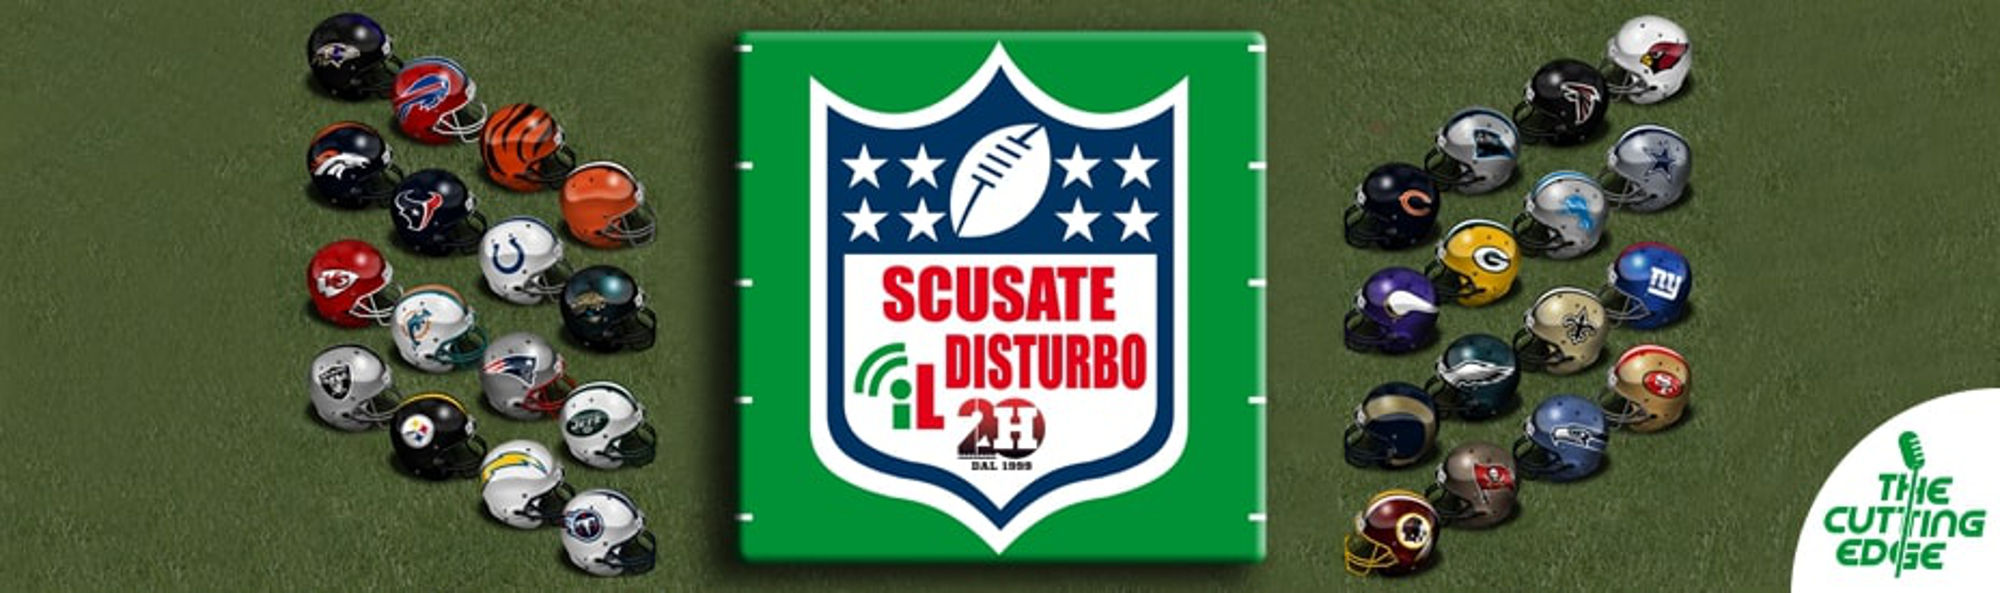 Scusate il Disturbo - Off Season E04